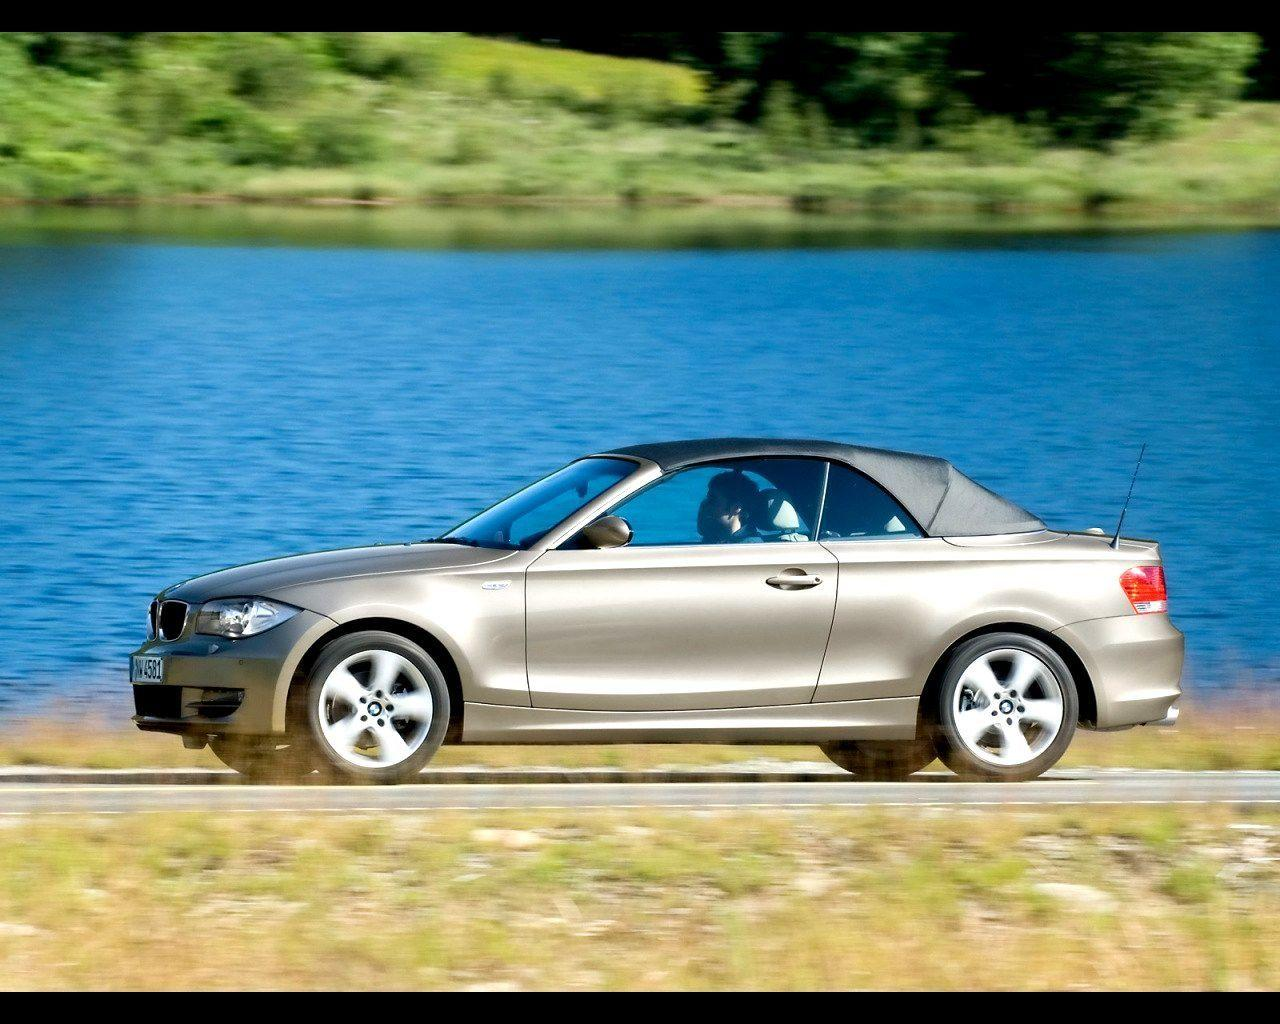 2008 BMW 1 Series Convertible Wallpaper 04 - 1280x1024